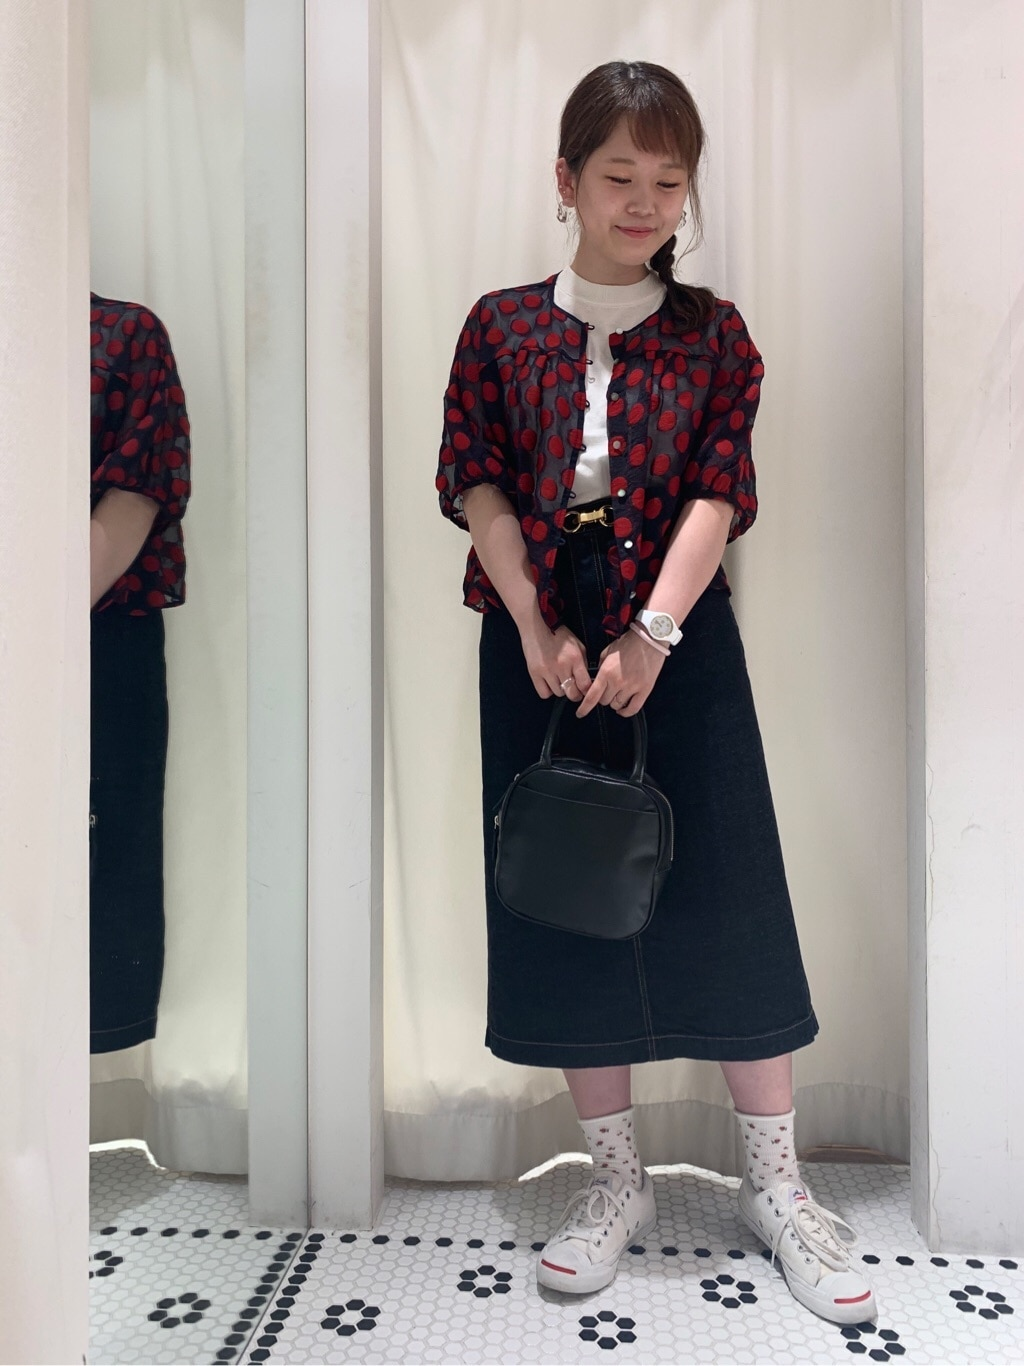 Dot and Stripes CHILD WOMAN 新宿ミロード 身長:157cm 2020.07.29